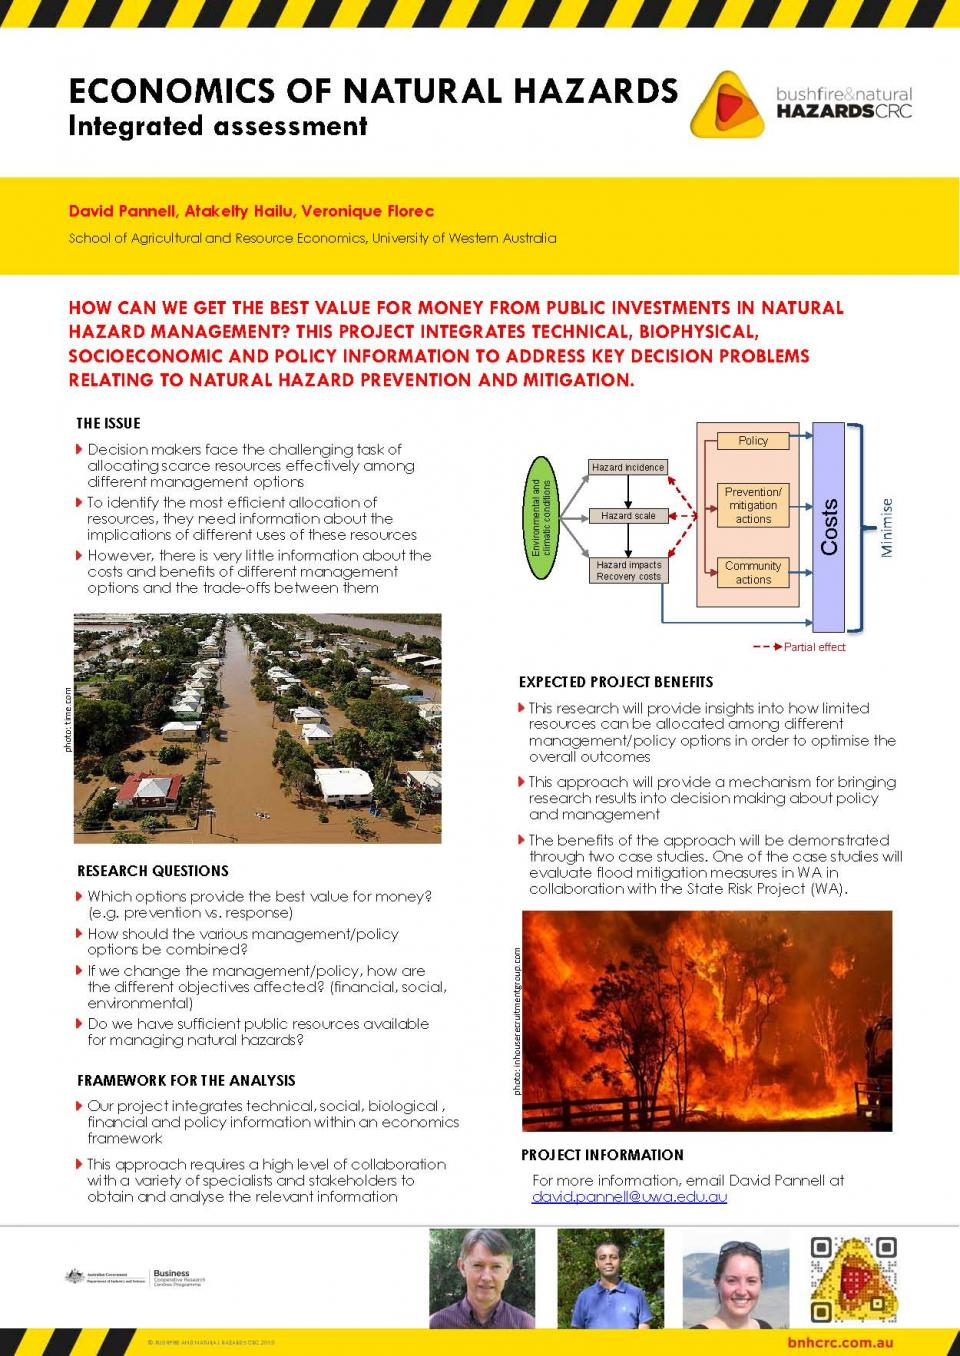 Economics of Natural Hazards: Integrated Assessment